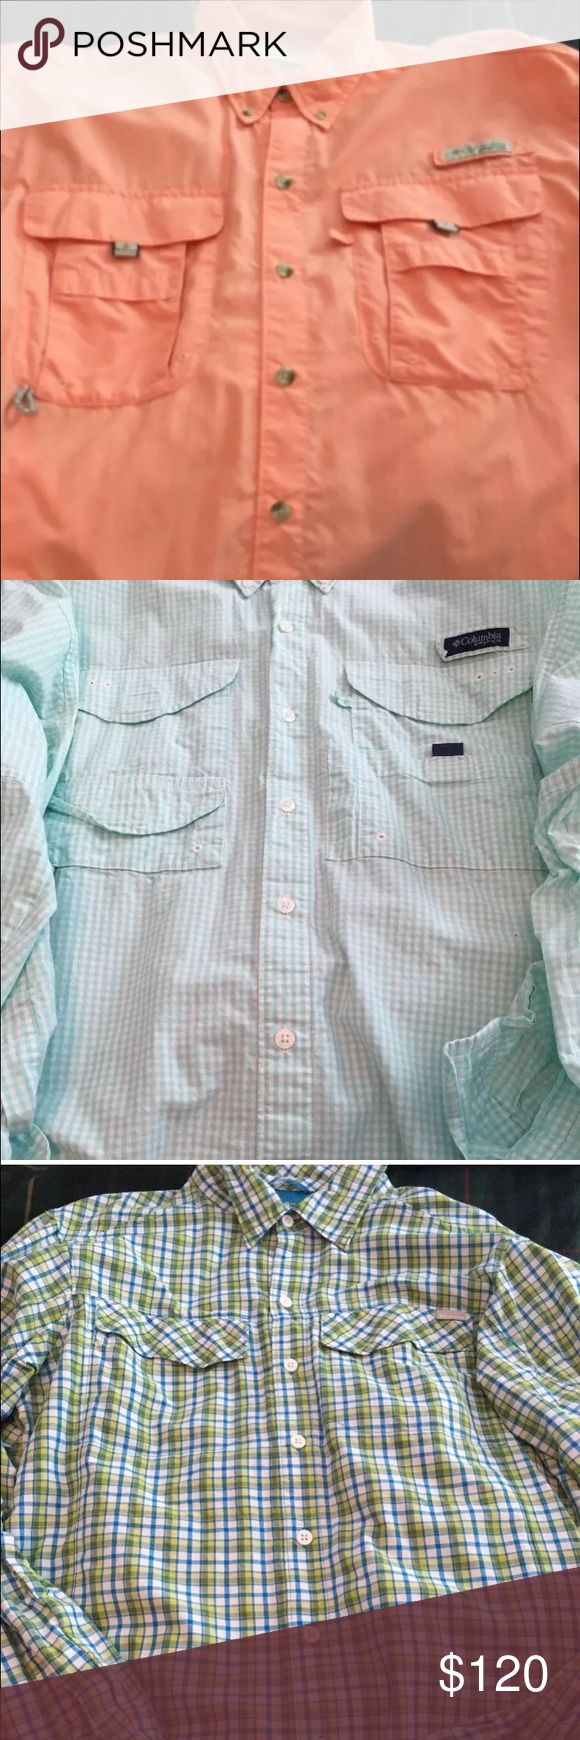 4 PFG Shirts in an AMAZING Bundle Most haven't been worn! New Performance Fishing Gear shirts, sizes Small and Medium. Perfect for boat, beach, or just everyday! Feel free to make offers or ask questions, always happy to help. Orange, blue, green smaller. Green blue checker is medium. If you're interested in an individual let me know :) PFG Shirts